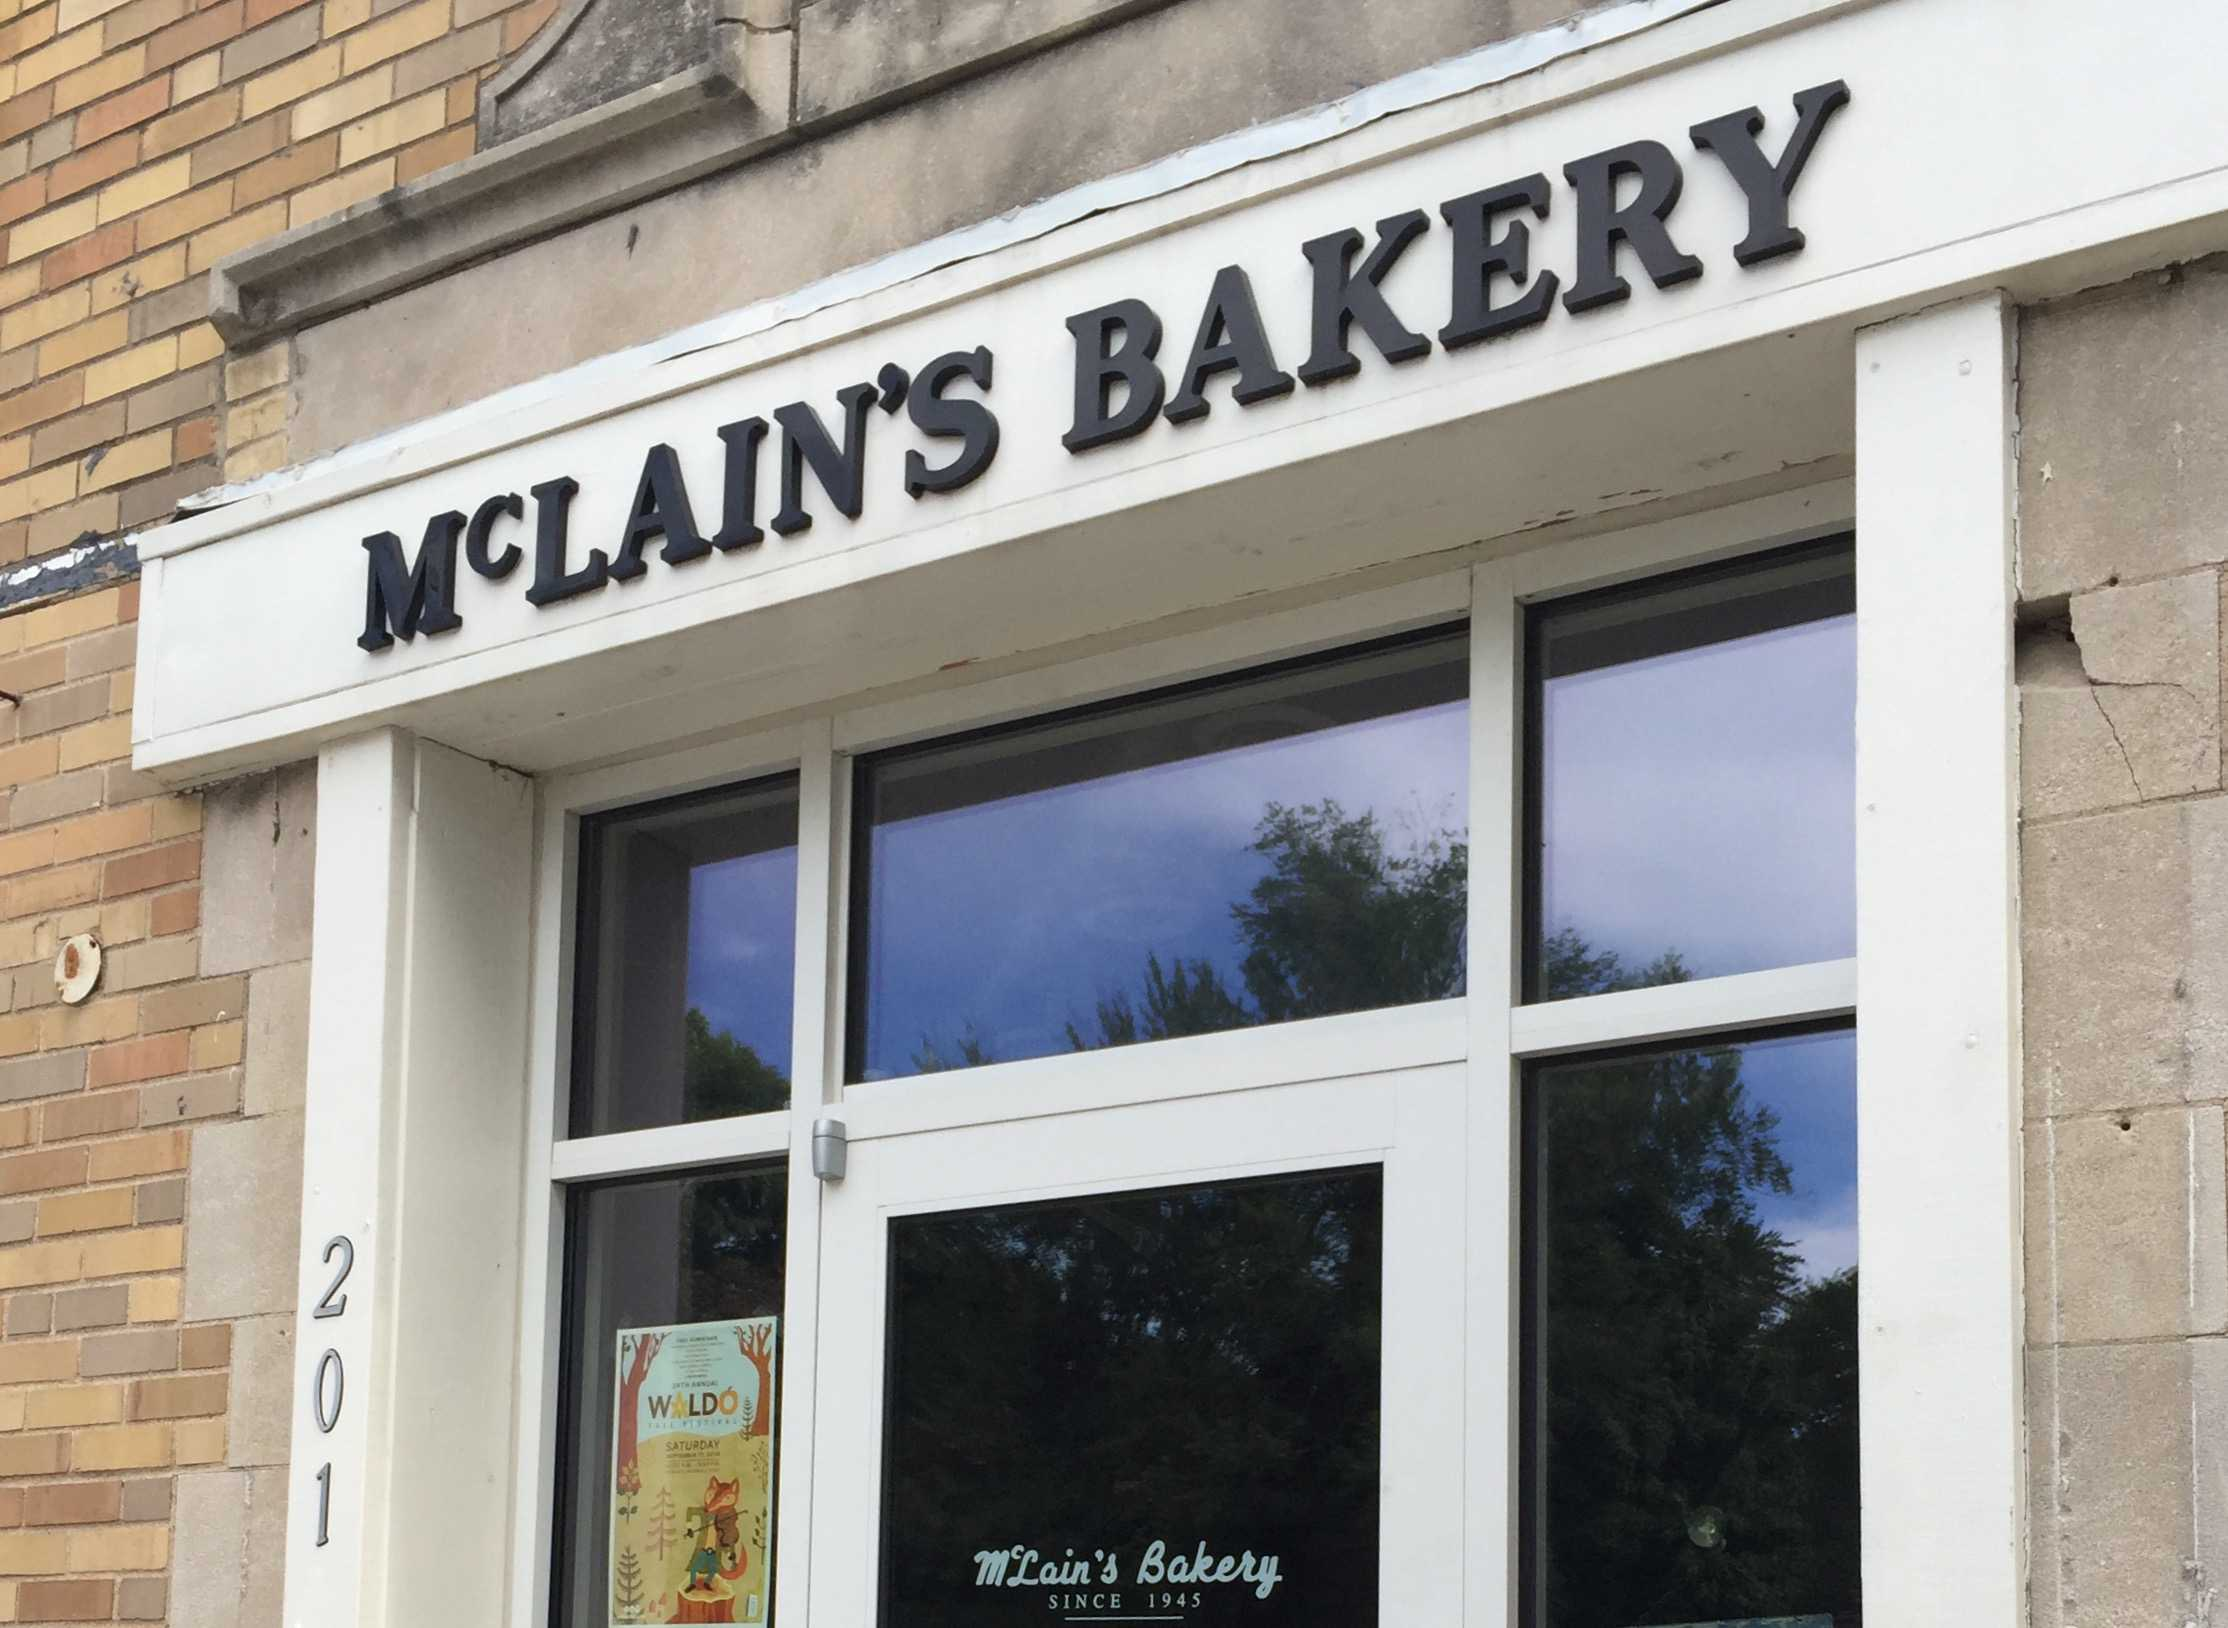 The entrance to McLain's Bakery, the third of three bakeries reviewed. photo by Sophy Silva